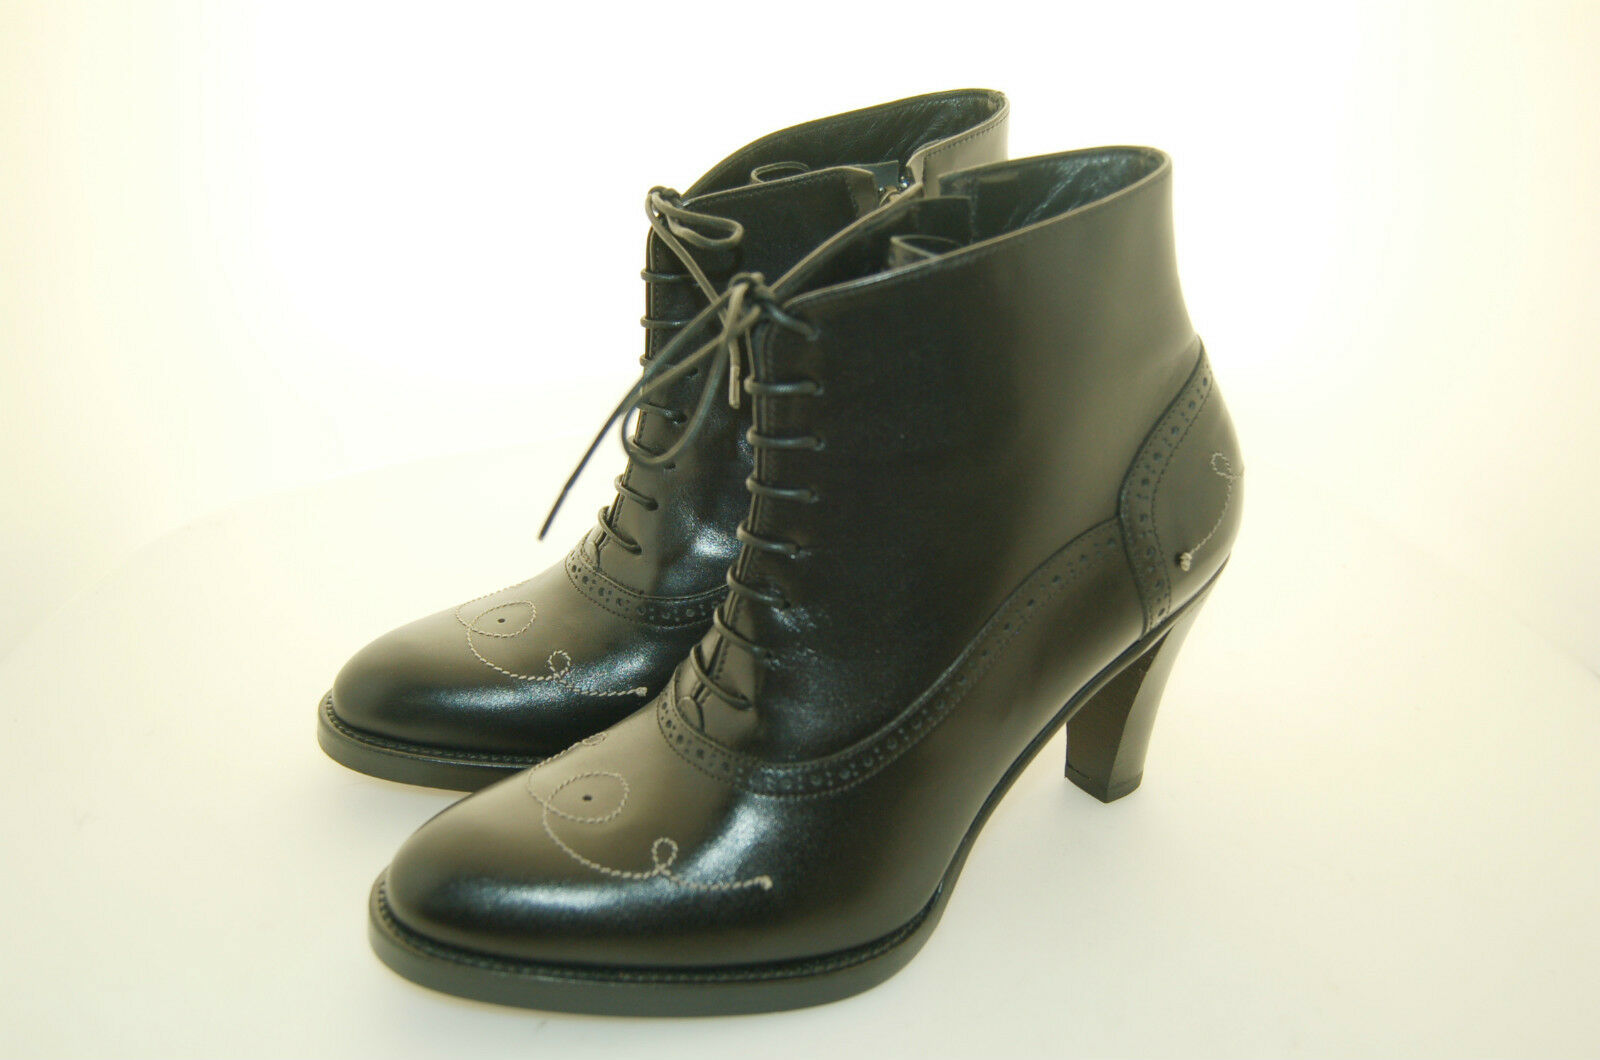 WOMAN - women - 37½ - ANKLE BOOT - CALF black - LEATHER SOLE - HEEL 8.5cm